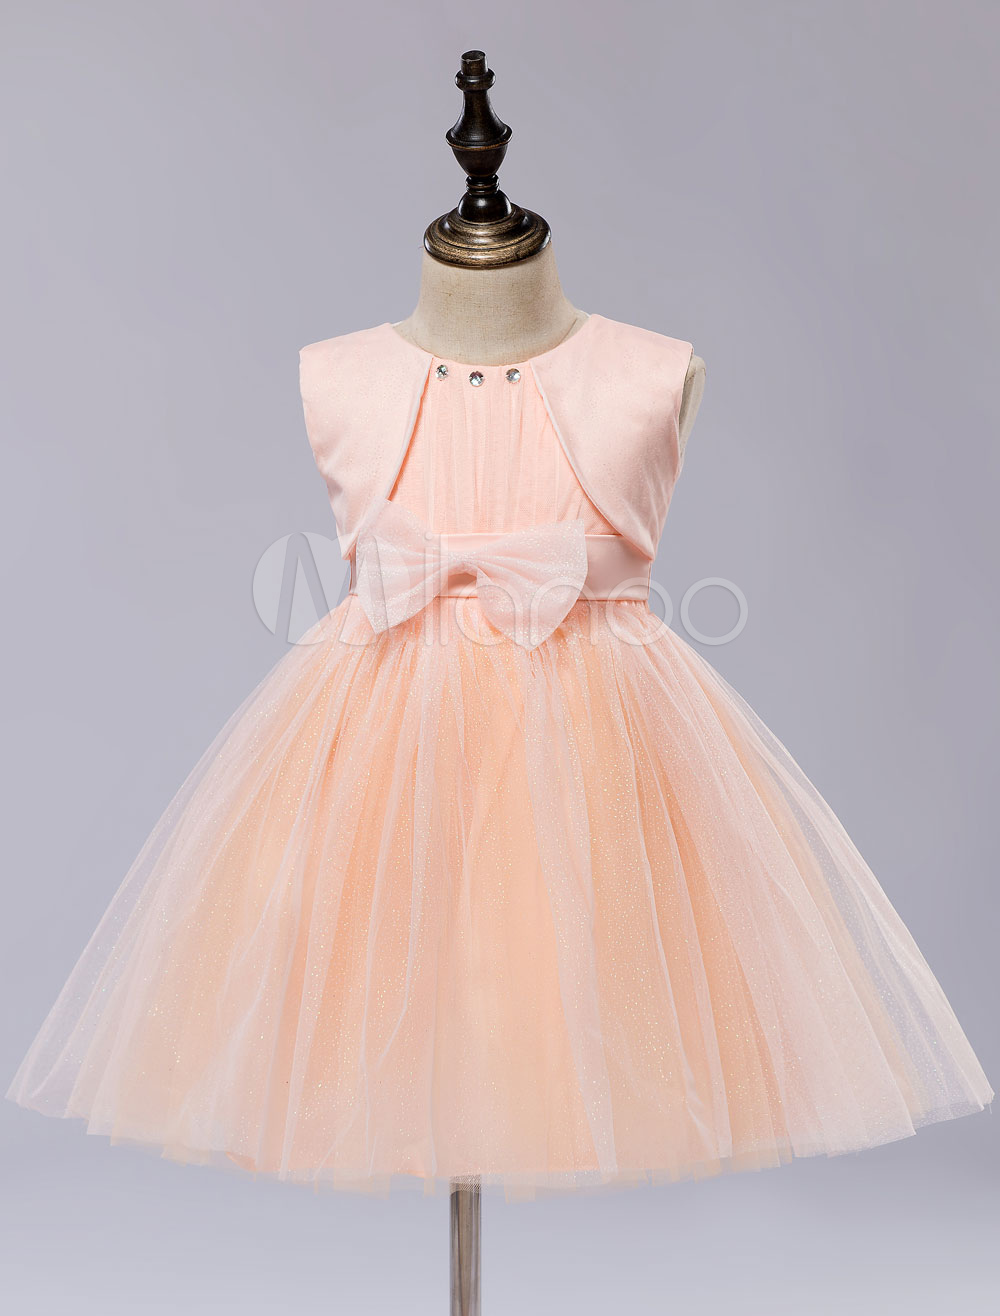 Flower Girls' Dress Knee-length Kid's Pageant Tutu Dress With Bows